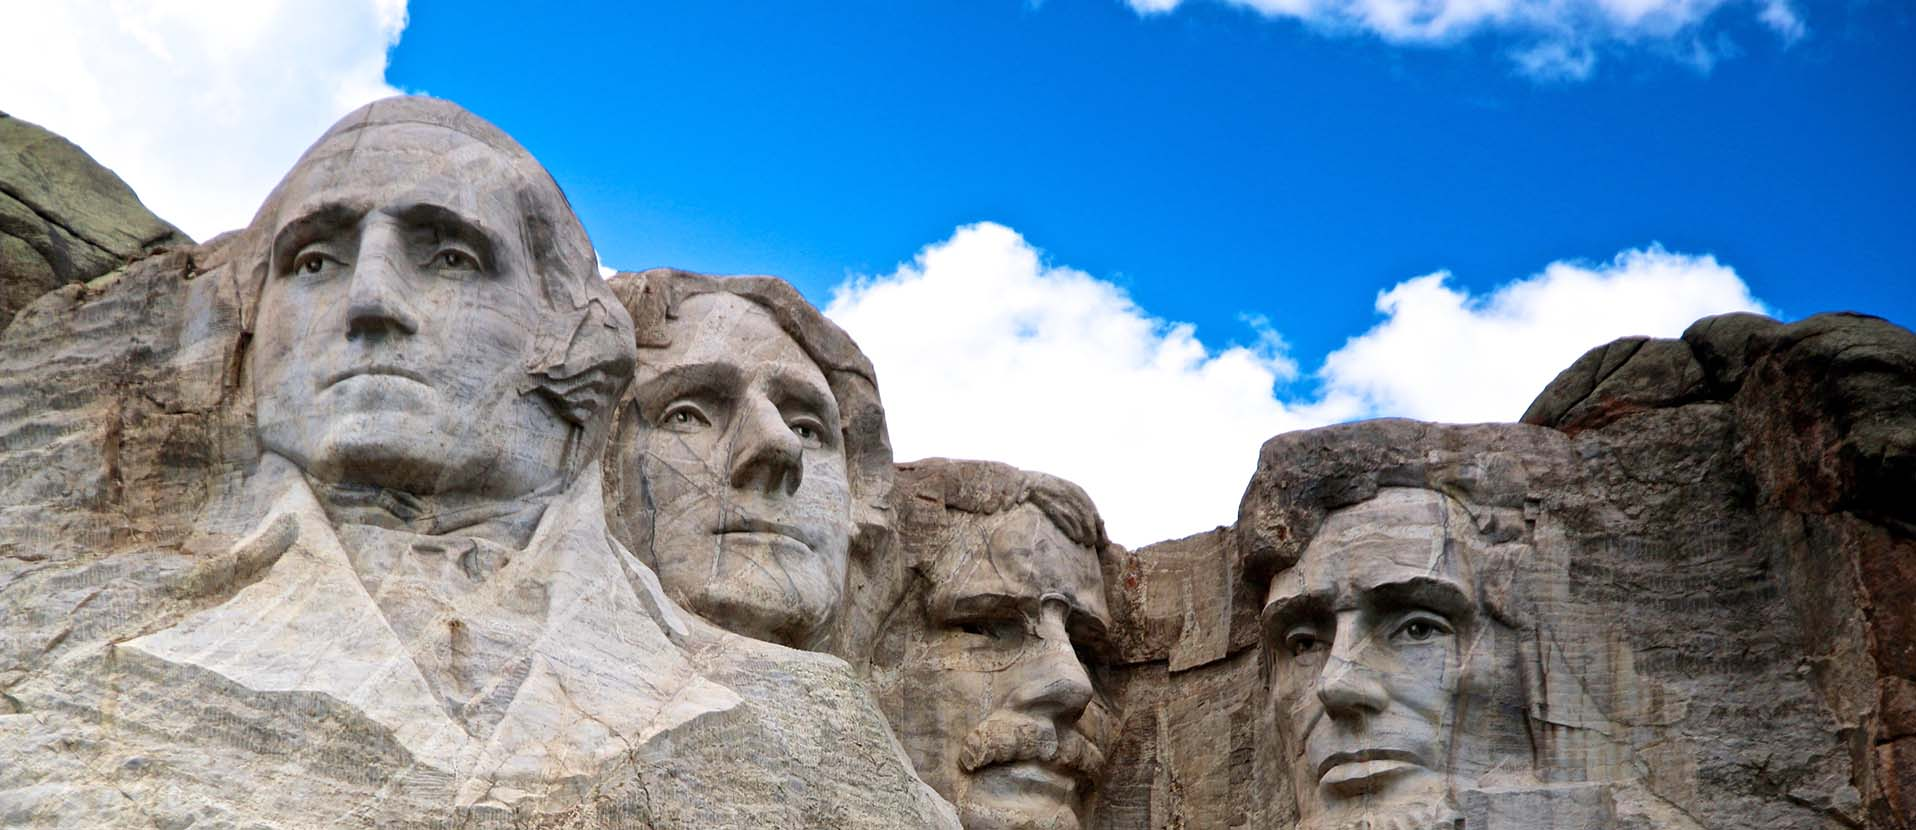 guerrilla ambient marketing south dakota mount rushmore